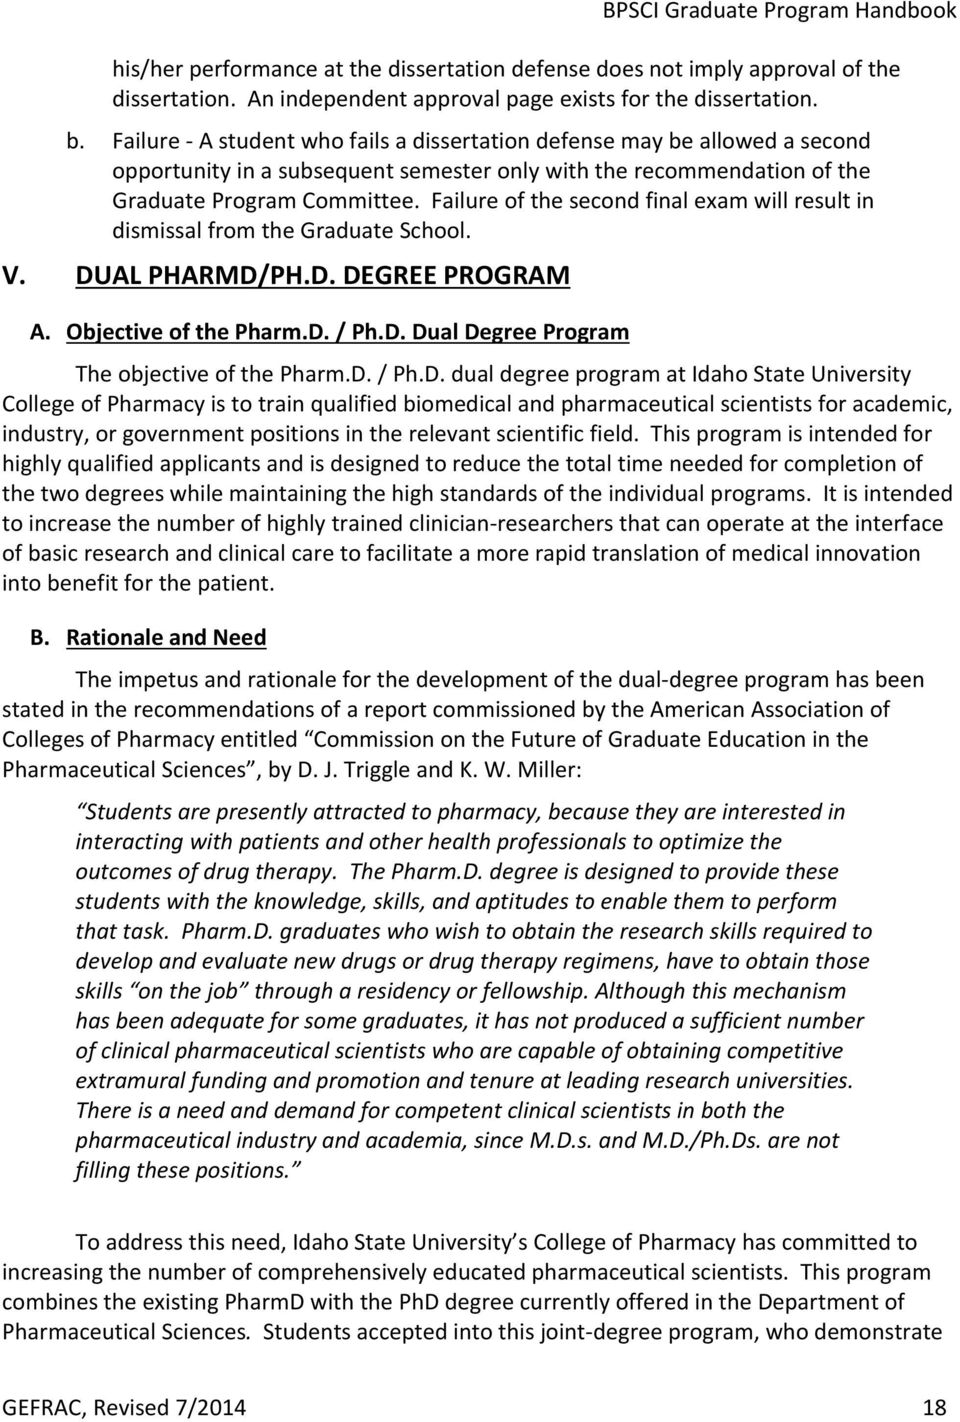 Failure of the second final exam will result in dismissal from the Graduate School. V. DUAL PHARMD/PH.D. DEGREE PROGRAM A. Objective of the Pharm.D. / Ph.D. Dual Degree Program The objective of the Pharm.